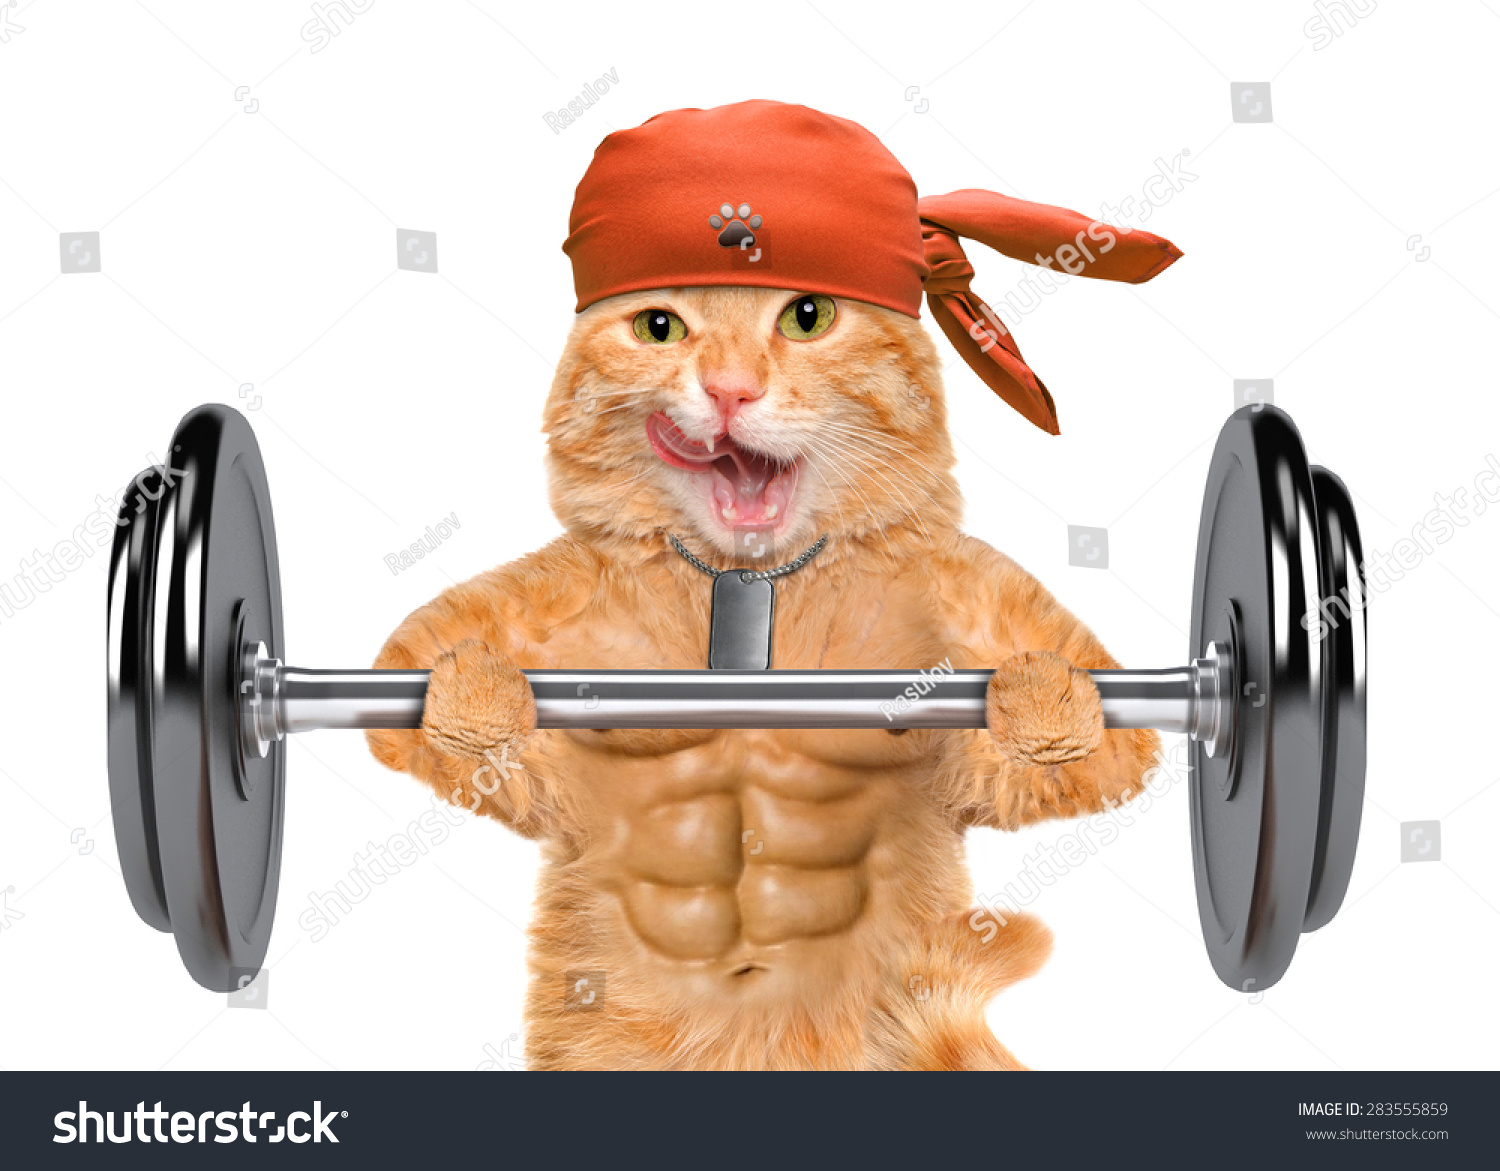 Fitness cat lifting a heavy big dumbbell